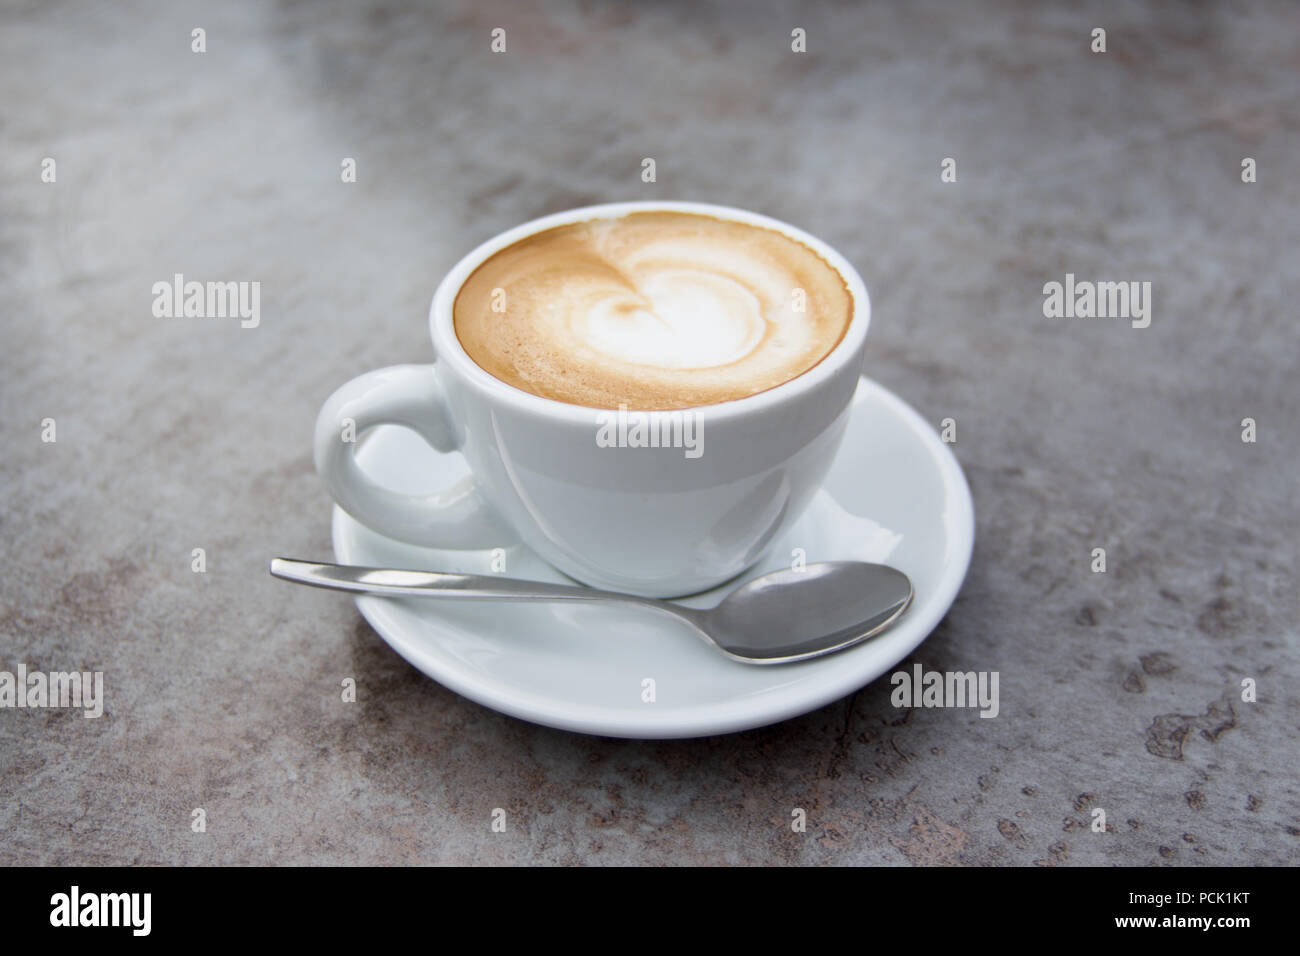 Nice hot mocha cappuccino latte coffee for breakfast buffet service - Stock Image